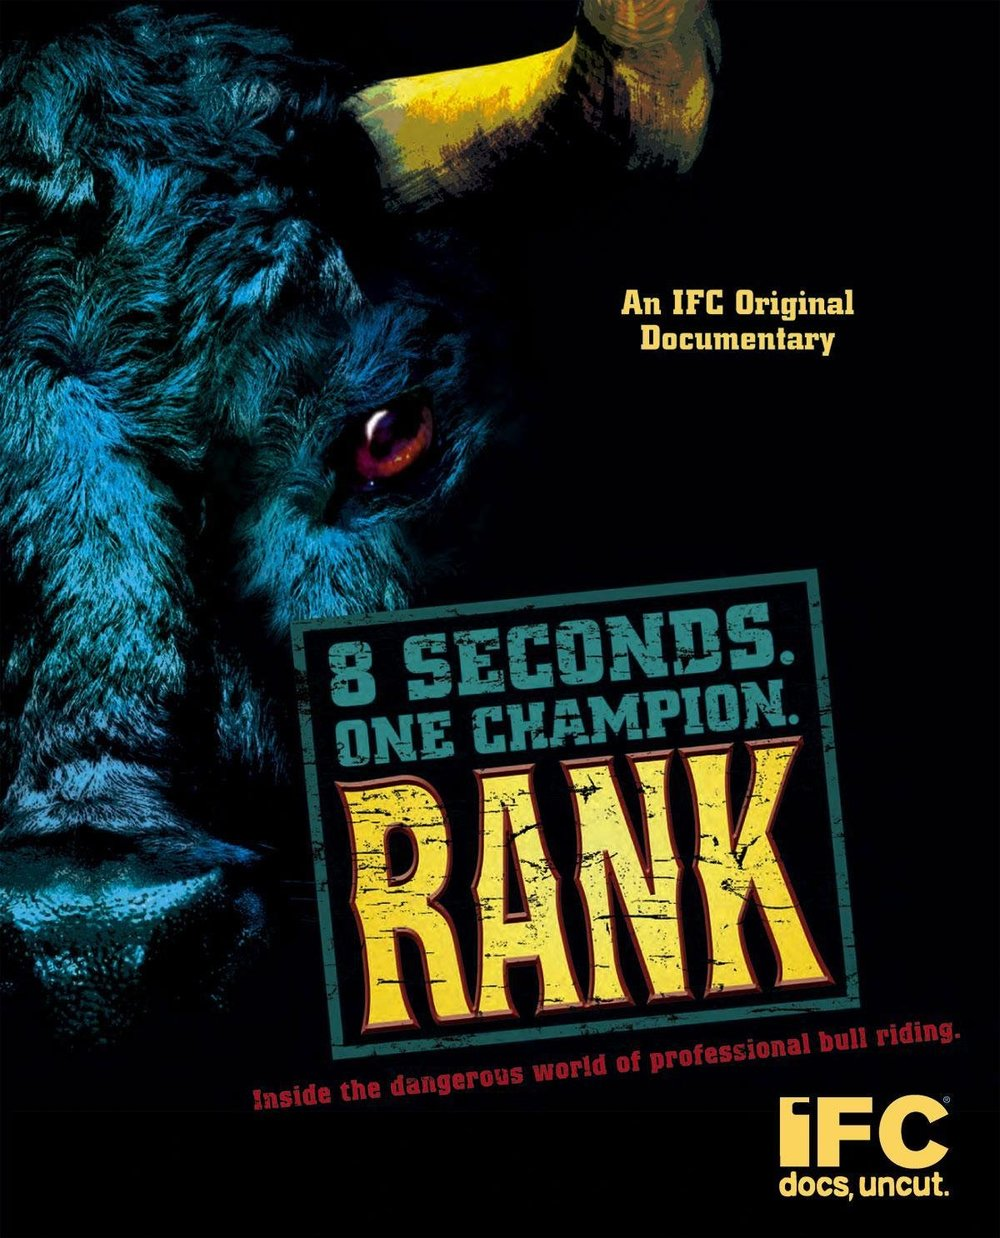 """Rank - After the success of The Smashing Machine The Independent Film Channel (IFC) approached filmmakers John Hyams and Jon Greenhalgh, looking for the same gritty realism, but in a different arena. Rank follows three elite bull riders journeying to Las Vegas for the PBR World Championships. The stakes are high for these young men, and they put their lives on the line every time they climb down on a two thousand-pound bucking bull. To quote Dr. Tandy Newton, the head of the PBR medical staff, """"It's not a matter of IF a professional bull rider will suffer a horrific injury, it's a matter of WHEN.""""Rank premiered at the 2006 South by Southwest Film Festival, followed by a long run on cable television (IFC). """"Rank is an evocative, beautifully shot look at a classic piece of Americana. The filmmakers opt for an almost meditative, ethereal style that results in a unique take on a subject usually treated in a more breathless and sensationalist manner."""